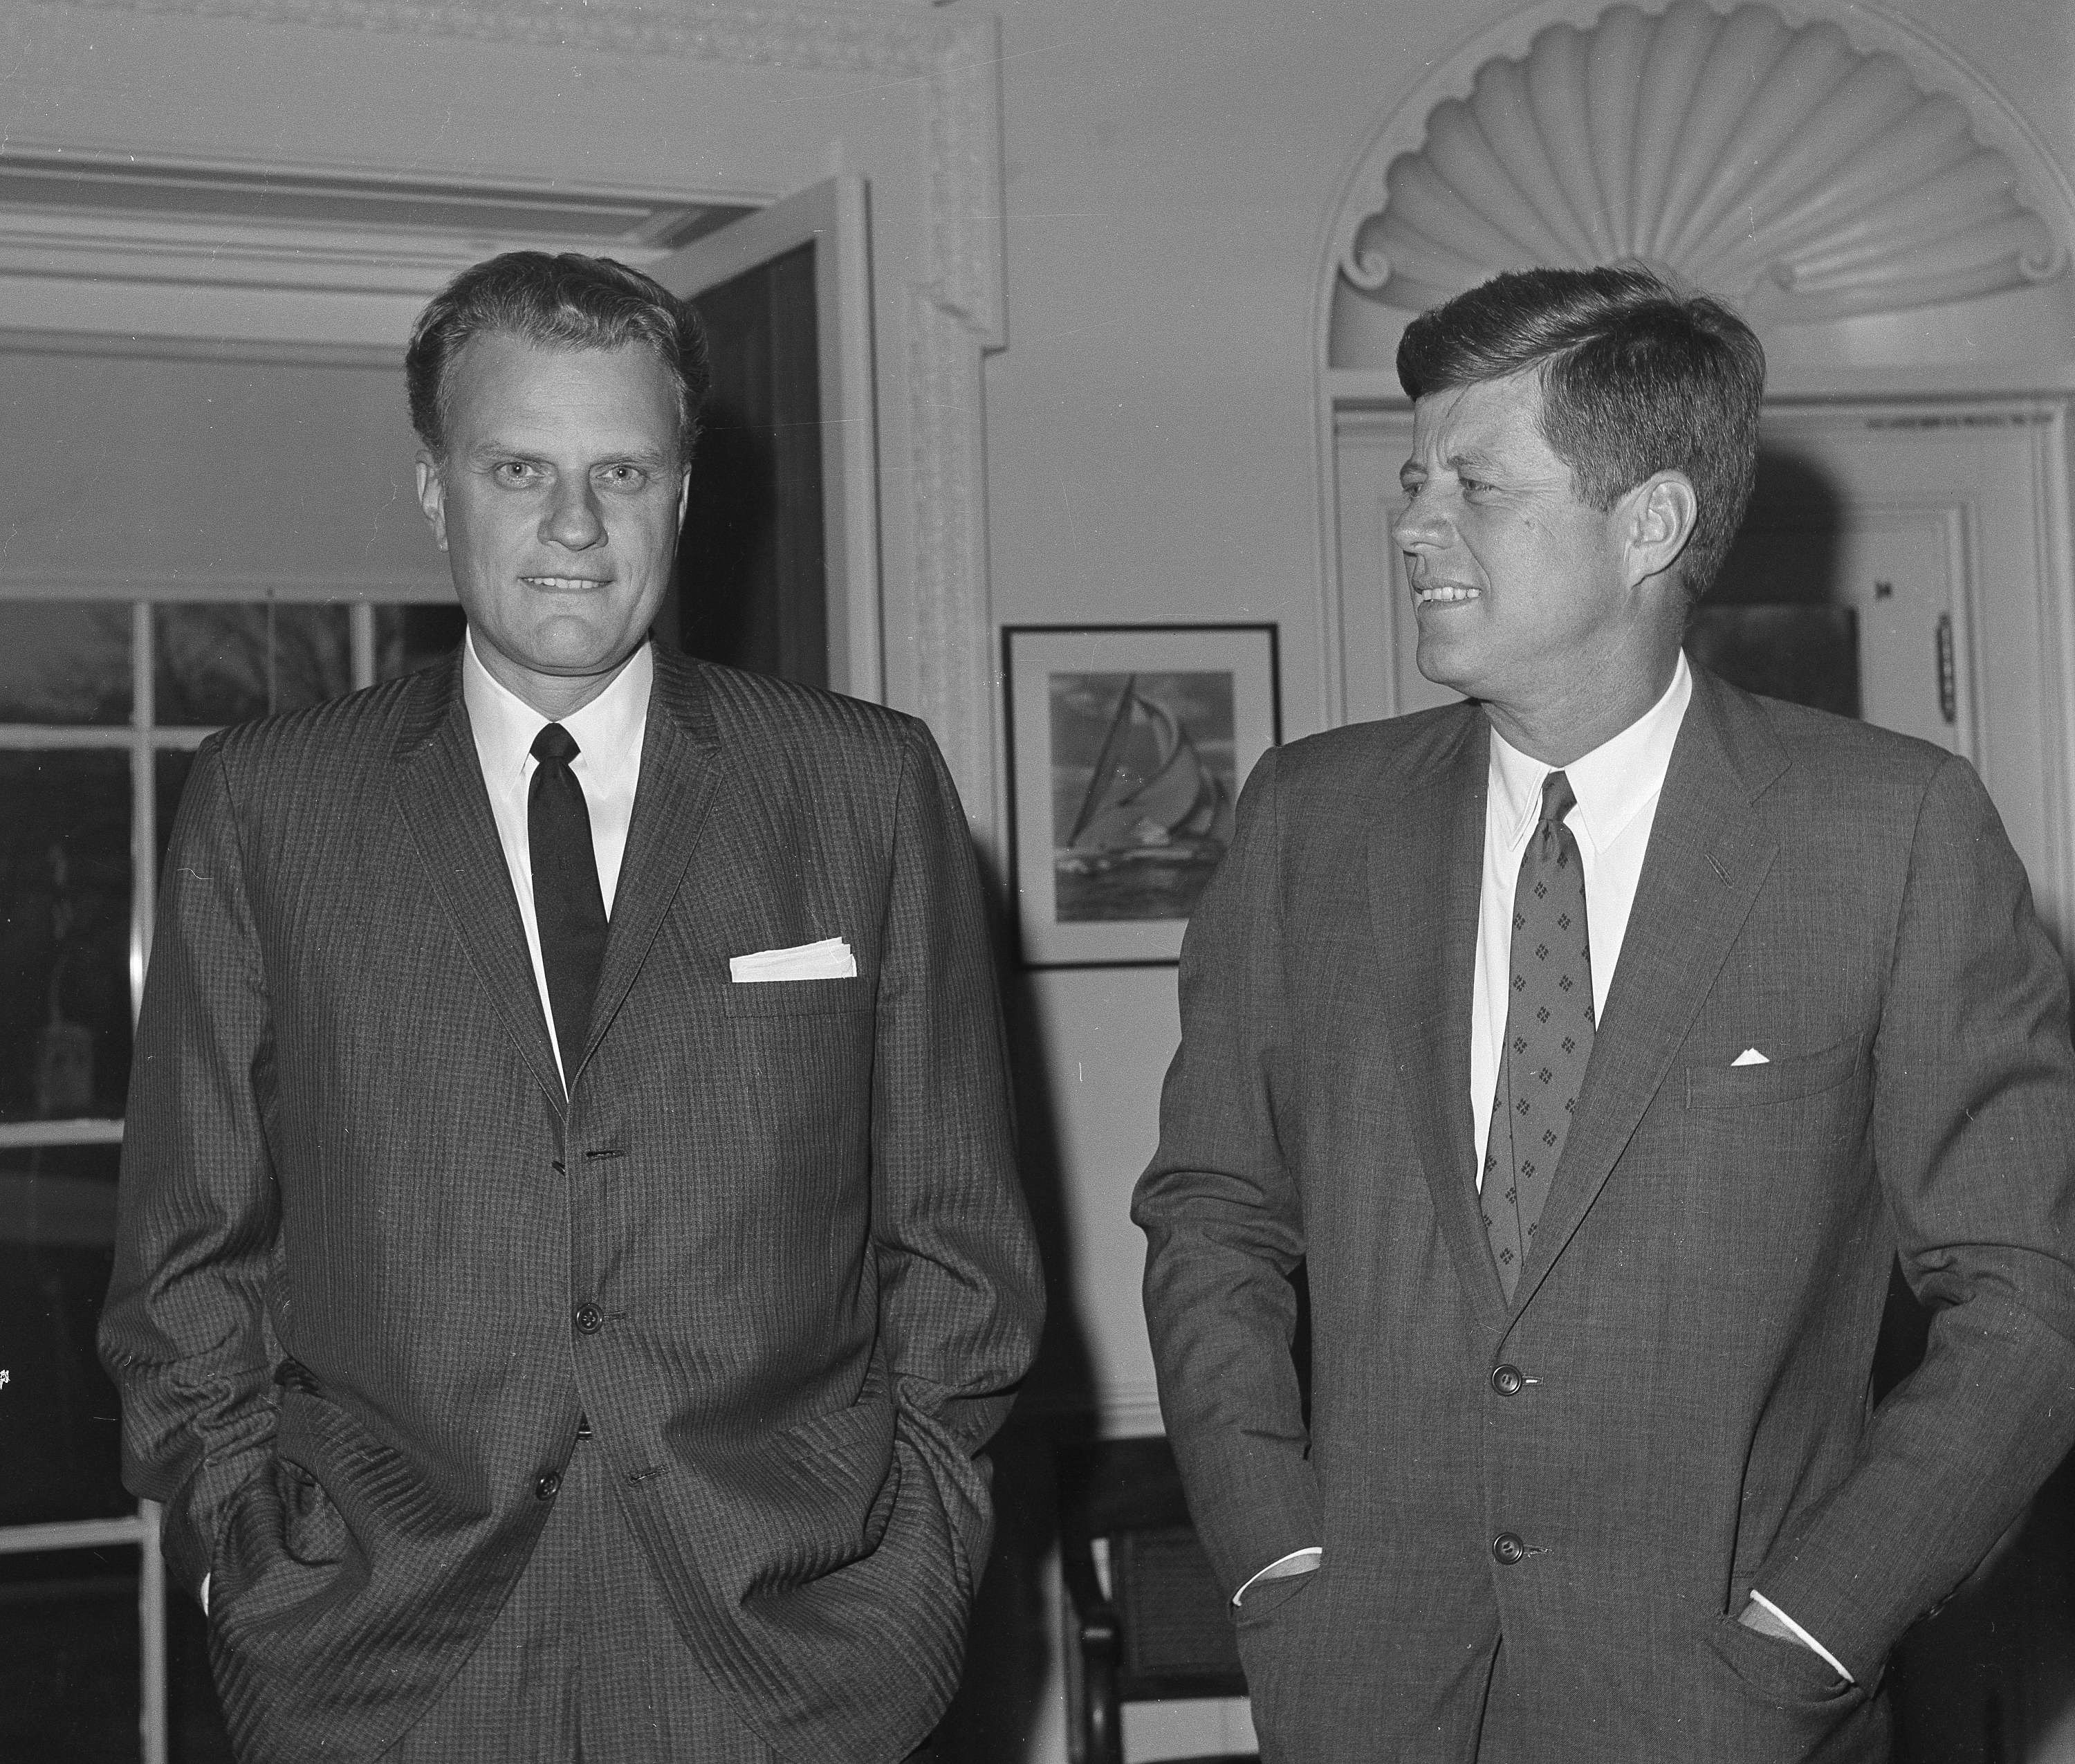 Billy Graham gave more than prayer to presidents